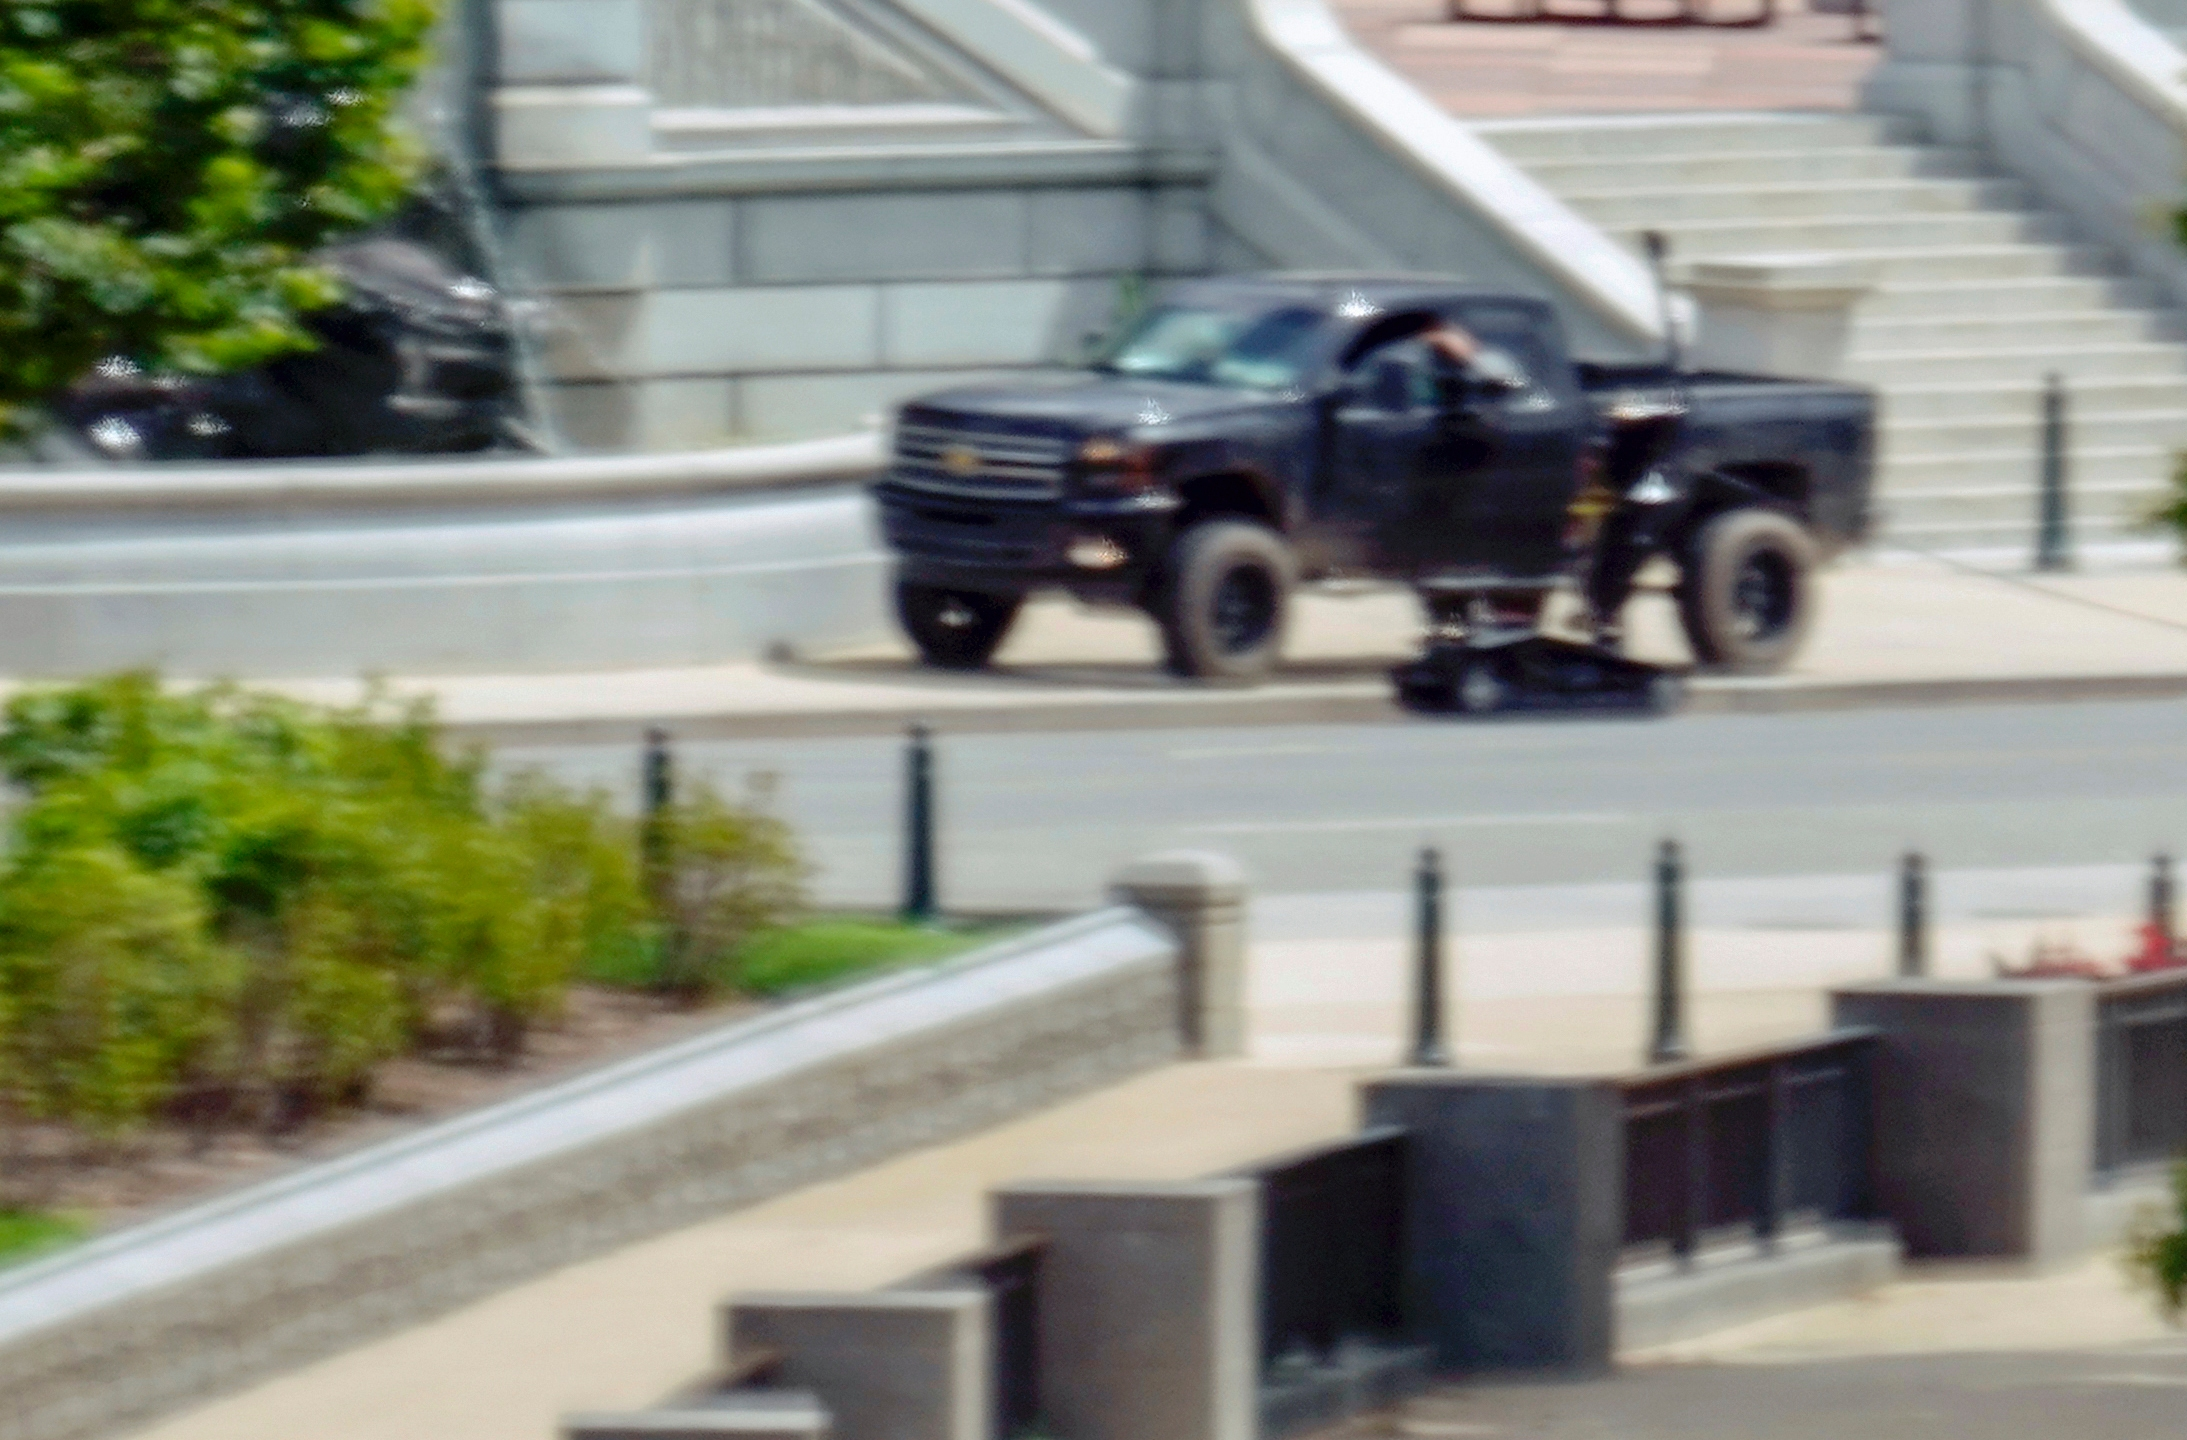 A robot is seen near a person in a pickup truck parked on the sidewalk in front of the Library of Congress' Thomas Jefferson Building, as seen from a window of the U.S. Capitol, Thursday, Aug. 19, 2021, in Washington. A man sitting in the pickup truck outside the Library of Congress has told police that he has a bomb, and that's led to a massive law enforcement response to determine whether it's an operable explosive device. (AP Photo/Alex Brandon)